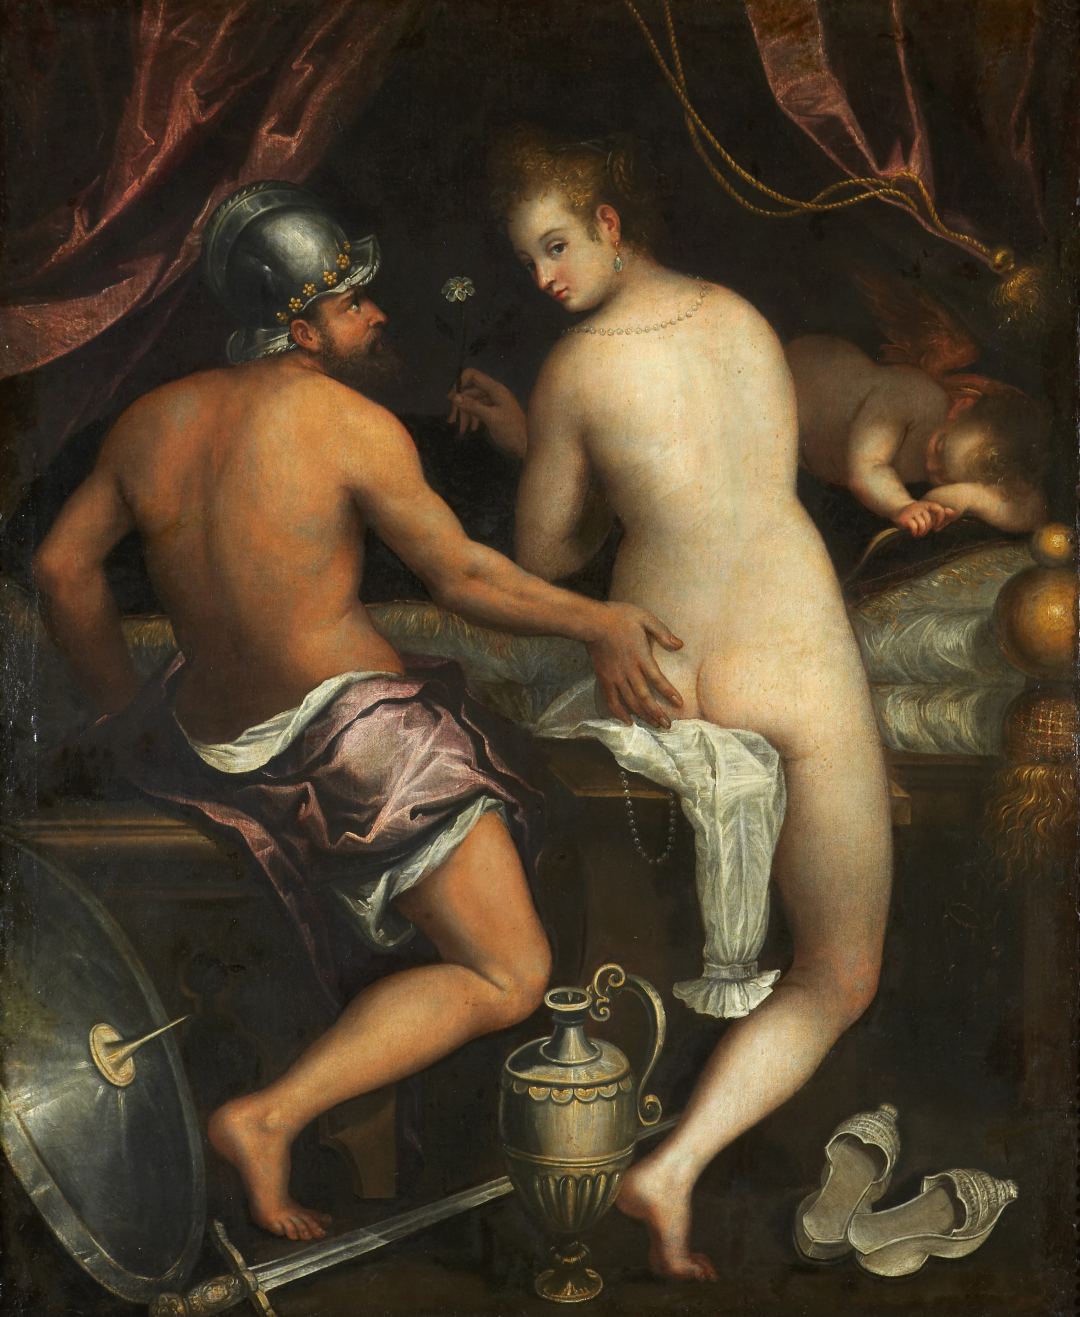 Lavinia-Fontana-Mars-and-Venus-Lavinia-Fontana-Oil-on-canvas-c.-1595-Madrid-Fundación-Casa-de-Alba-1080x1317.jpg